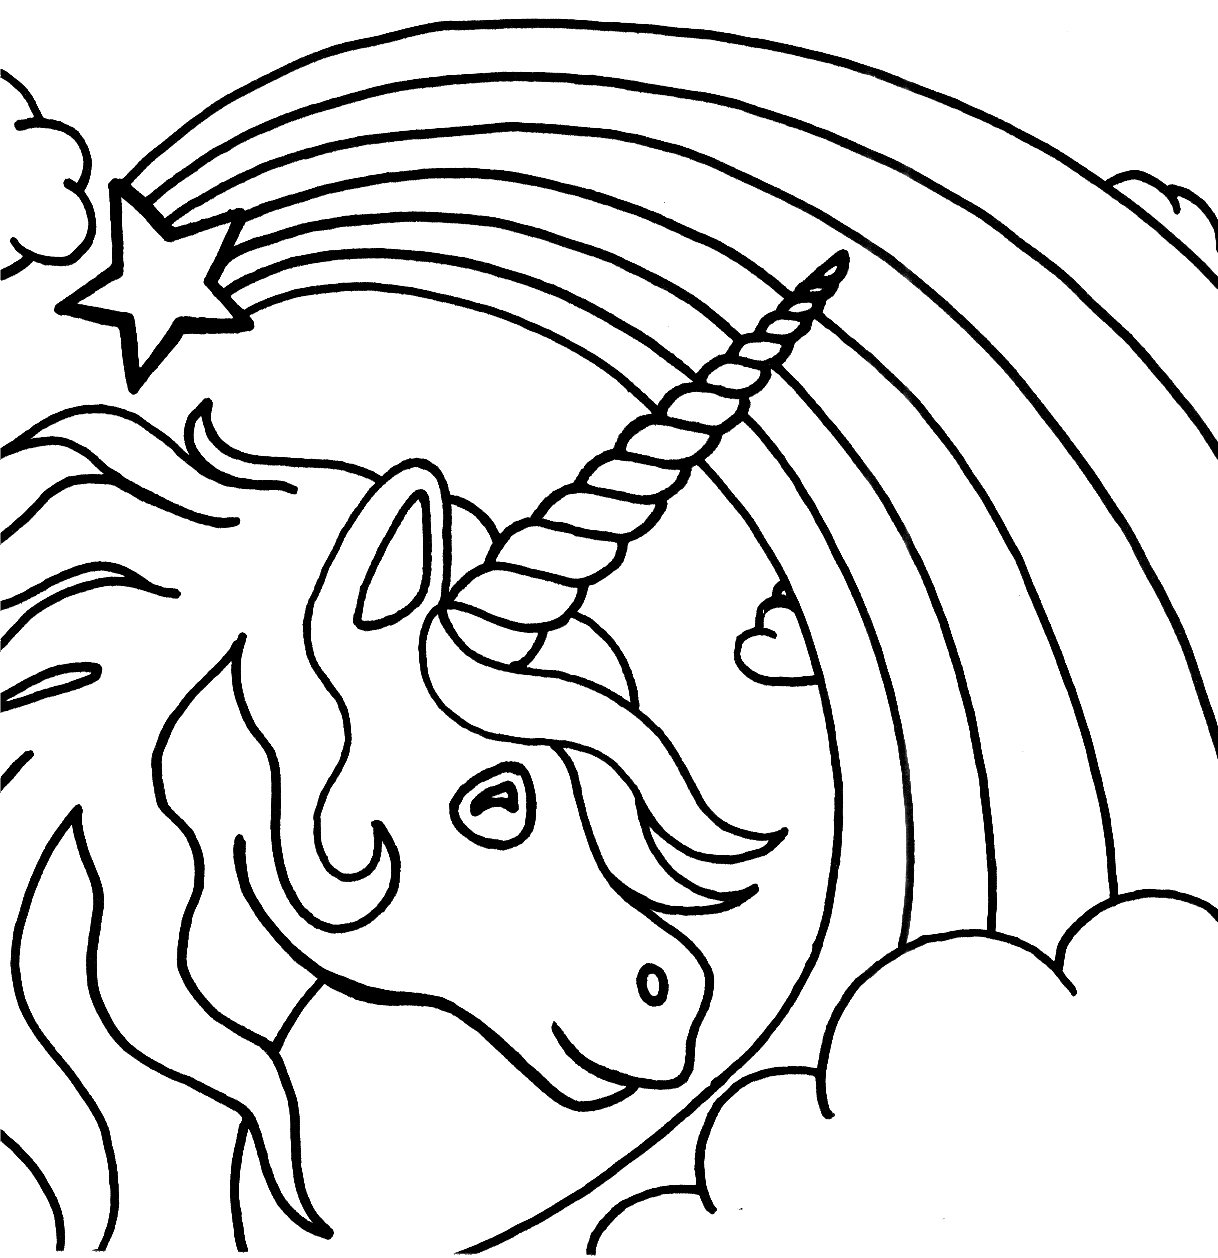 Epic Coloring Pages For Kids Printable 96 About Remodel Seasonal